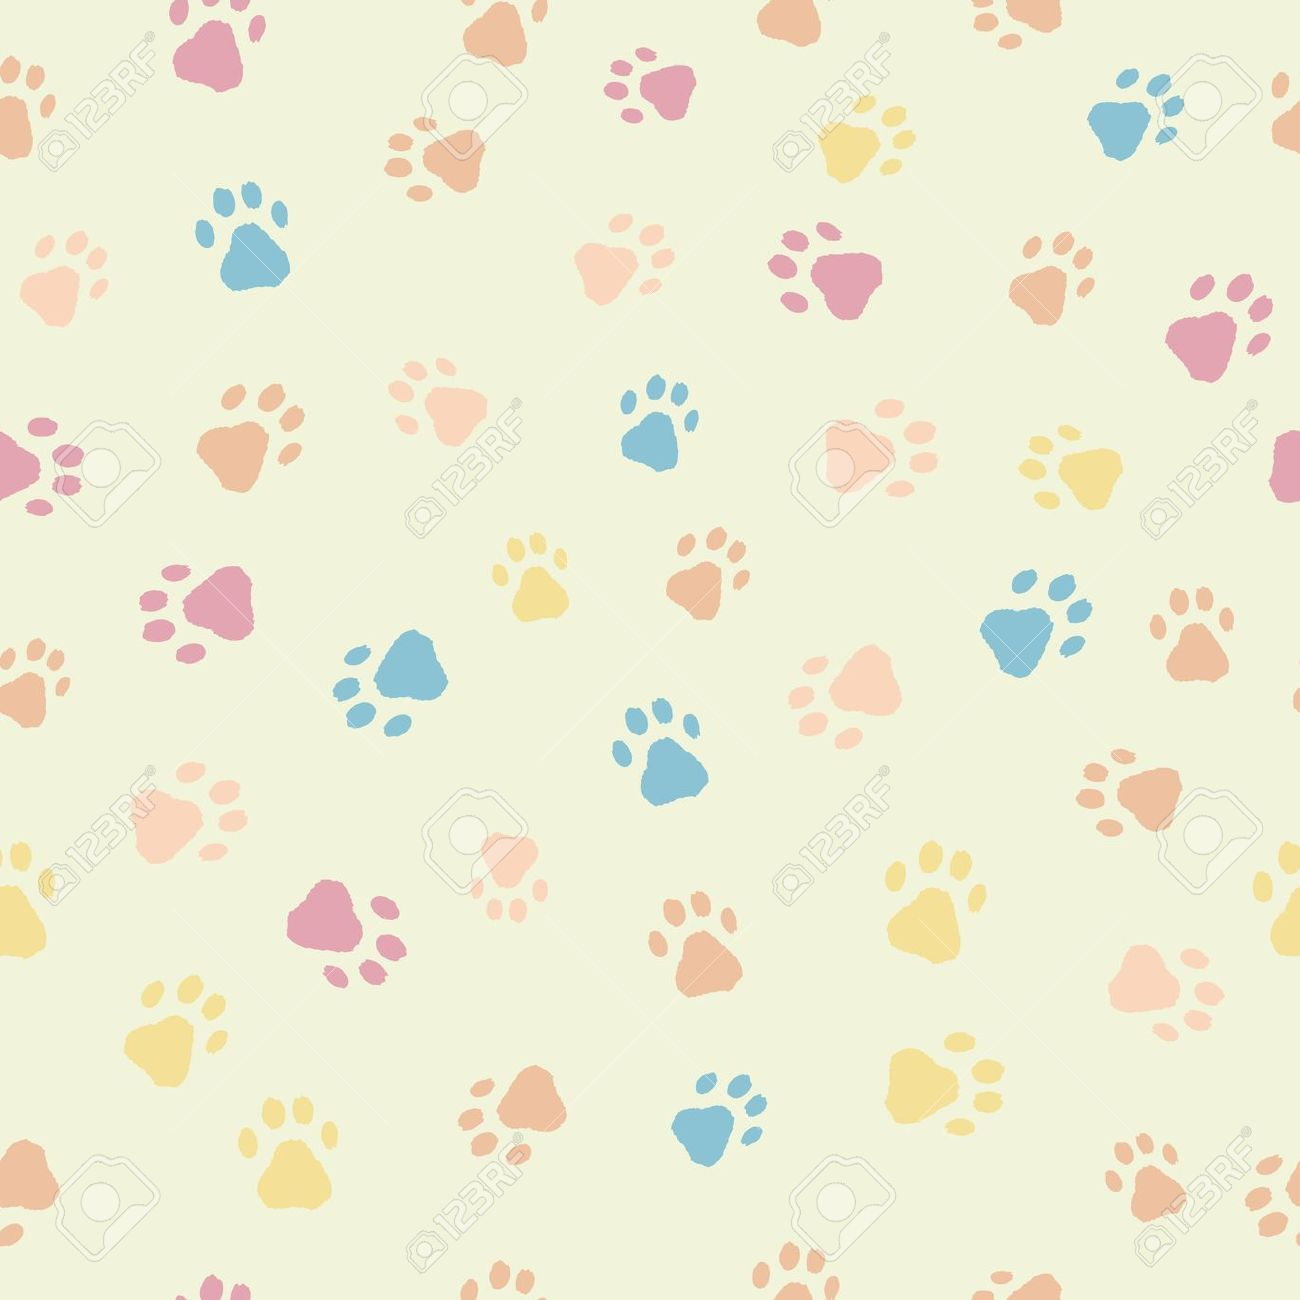 Tech 3d Free Live Wallpaper Download Dog Footprint Wallpaper Gallery